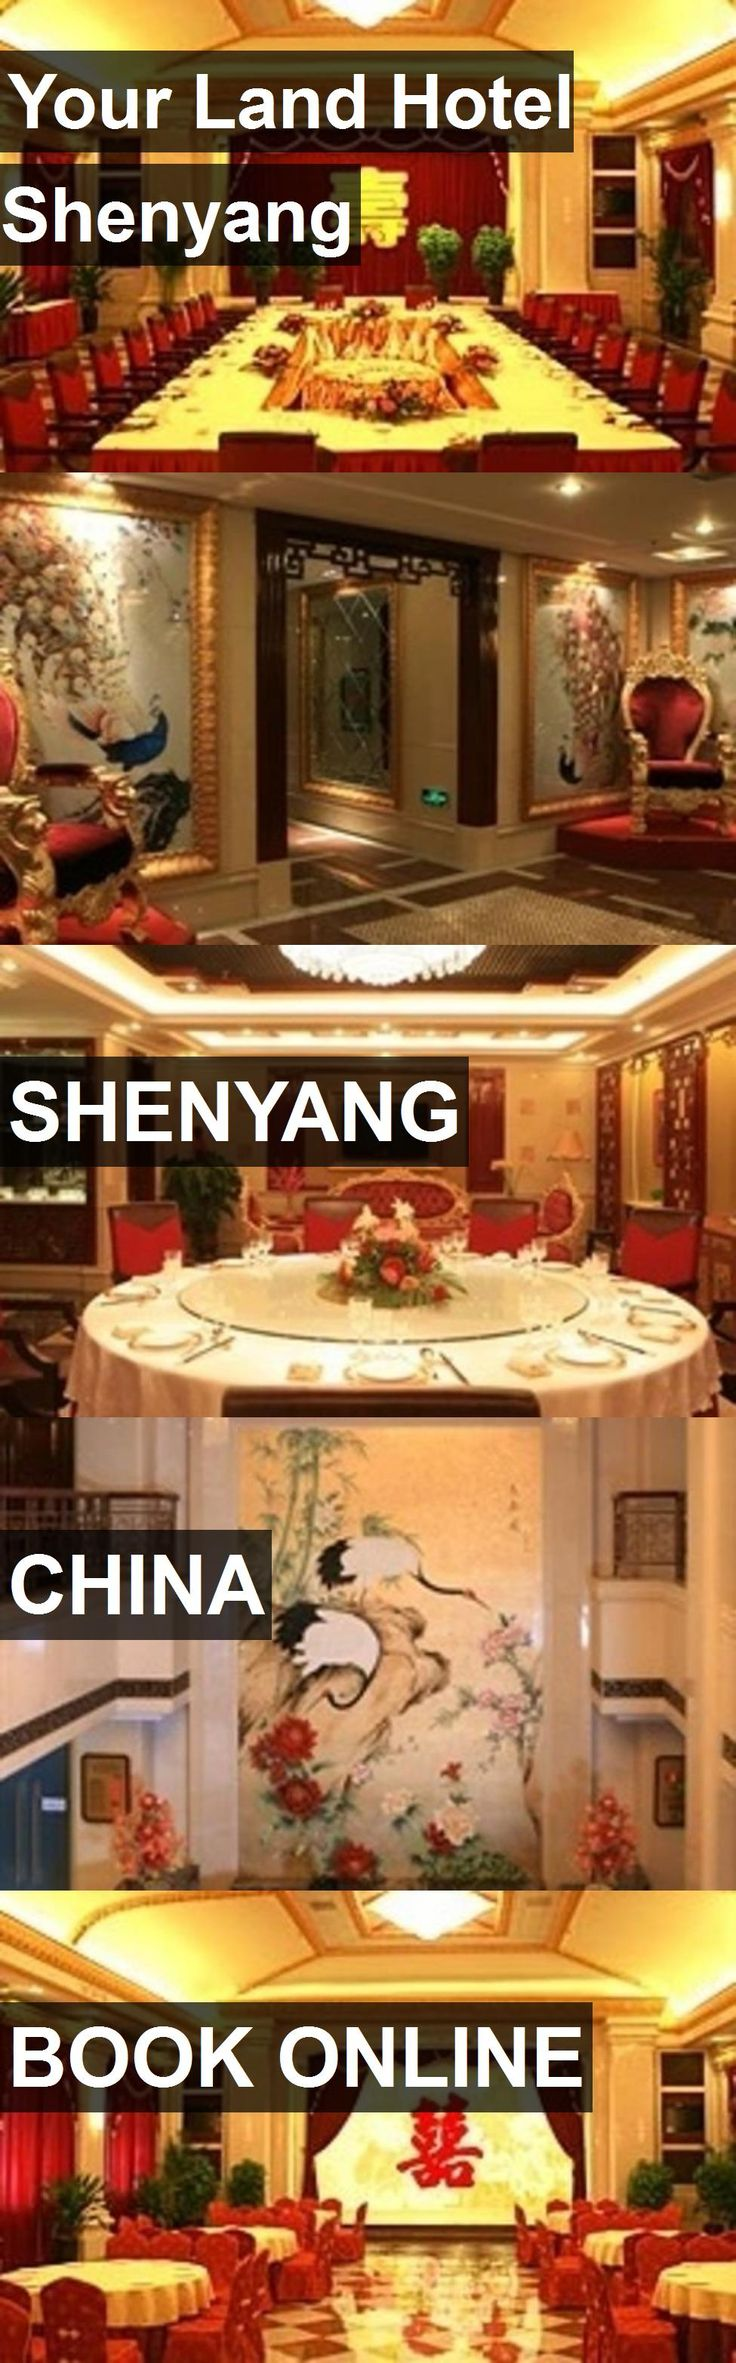 Hotel Your Land Hotel Shenyang in Shenyang, China. For more information, photos, reviews and best prices please follow the link. #China #Shenyang #YourLandHotelShenyang #hotel #travel #vacation